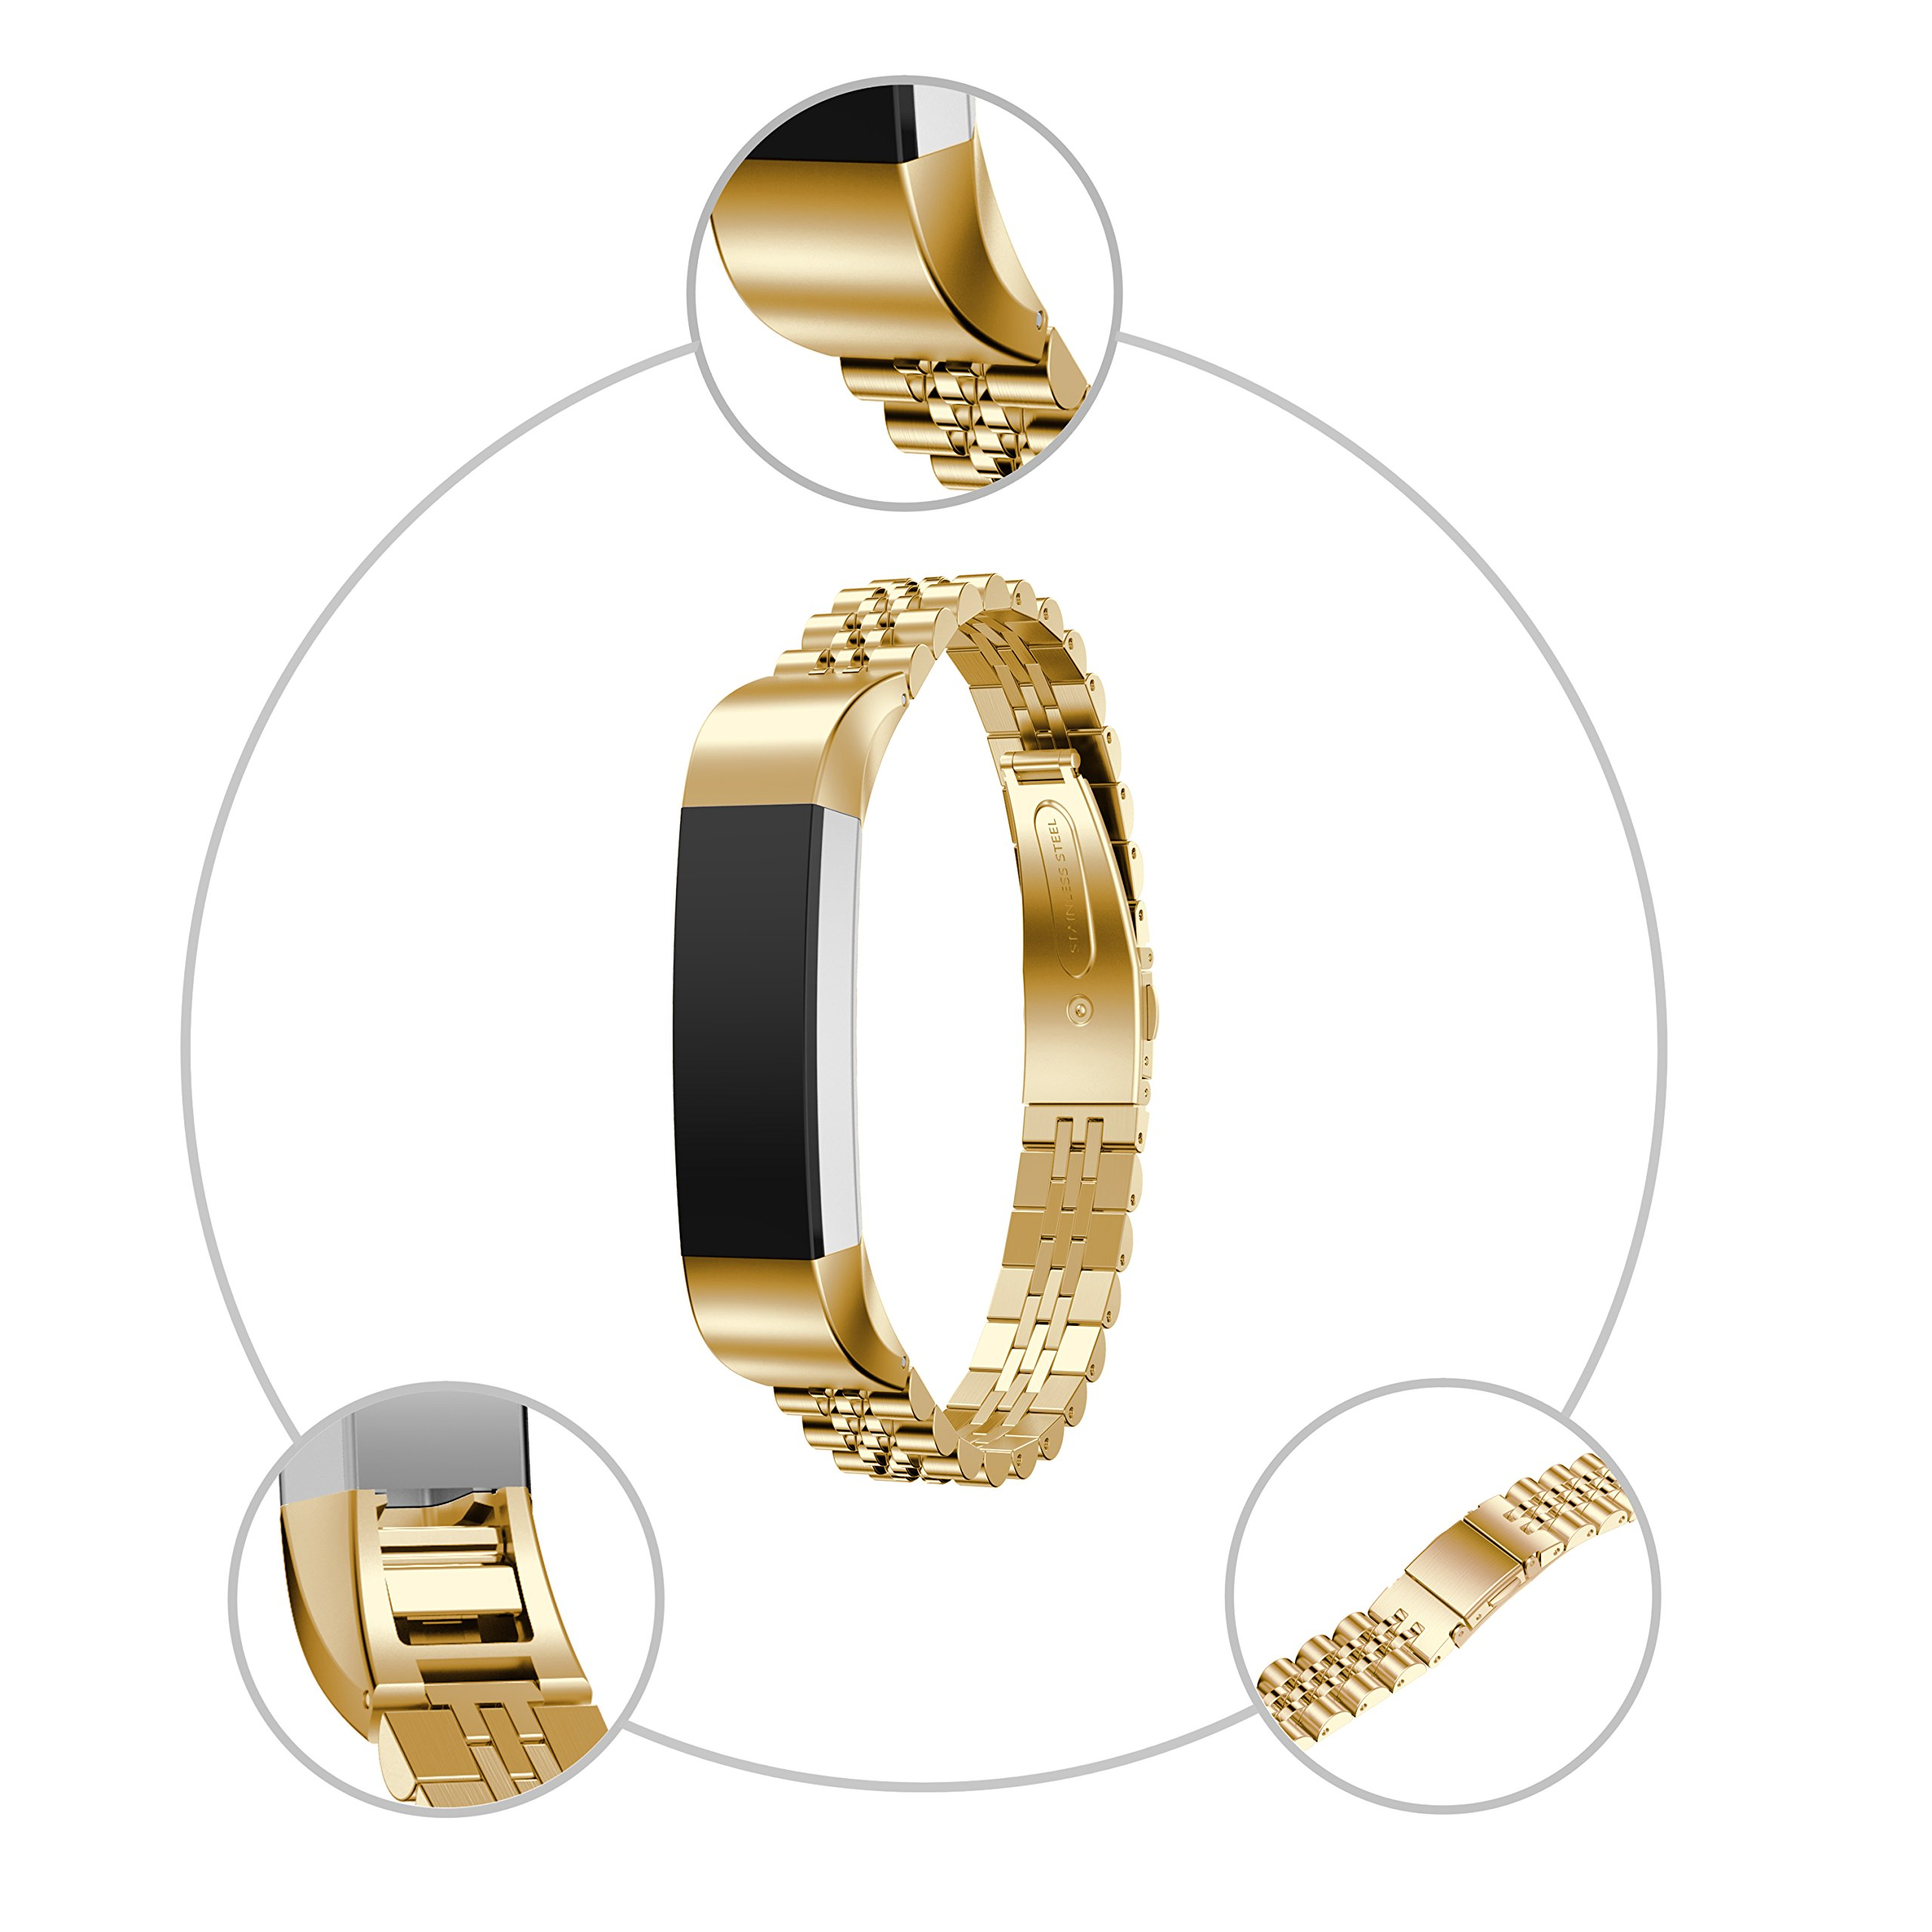 RuenTech For Fitbit Alta/Alta HR Bands Replacement Metal Bands Business Style Bracelet For Fitbit Alta HR and Alta (Gold)